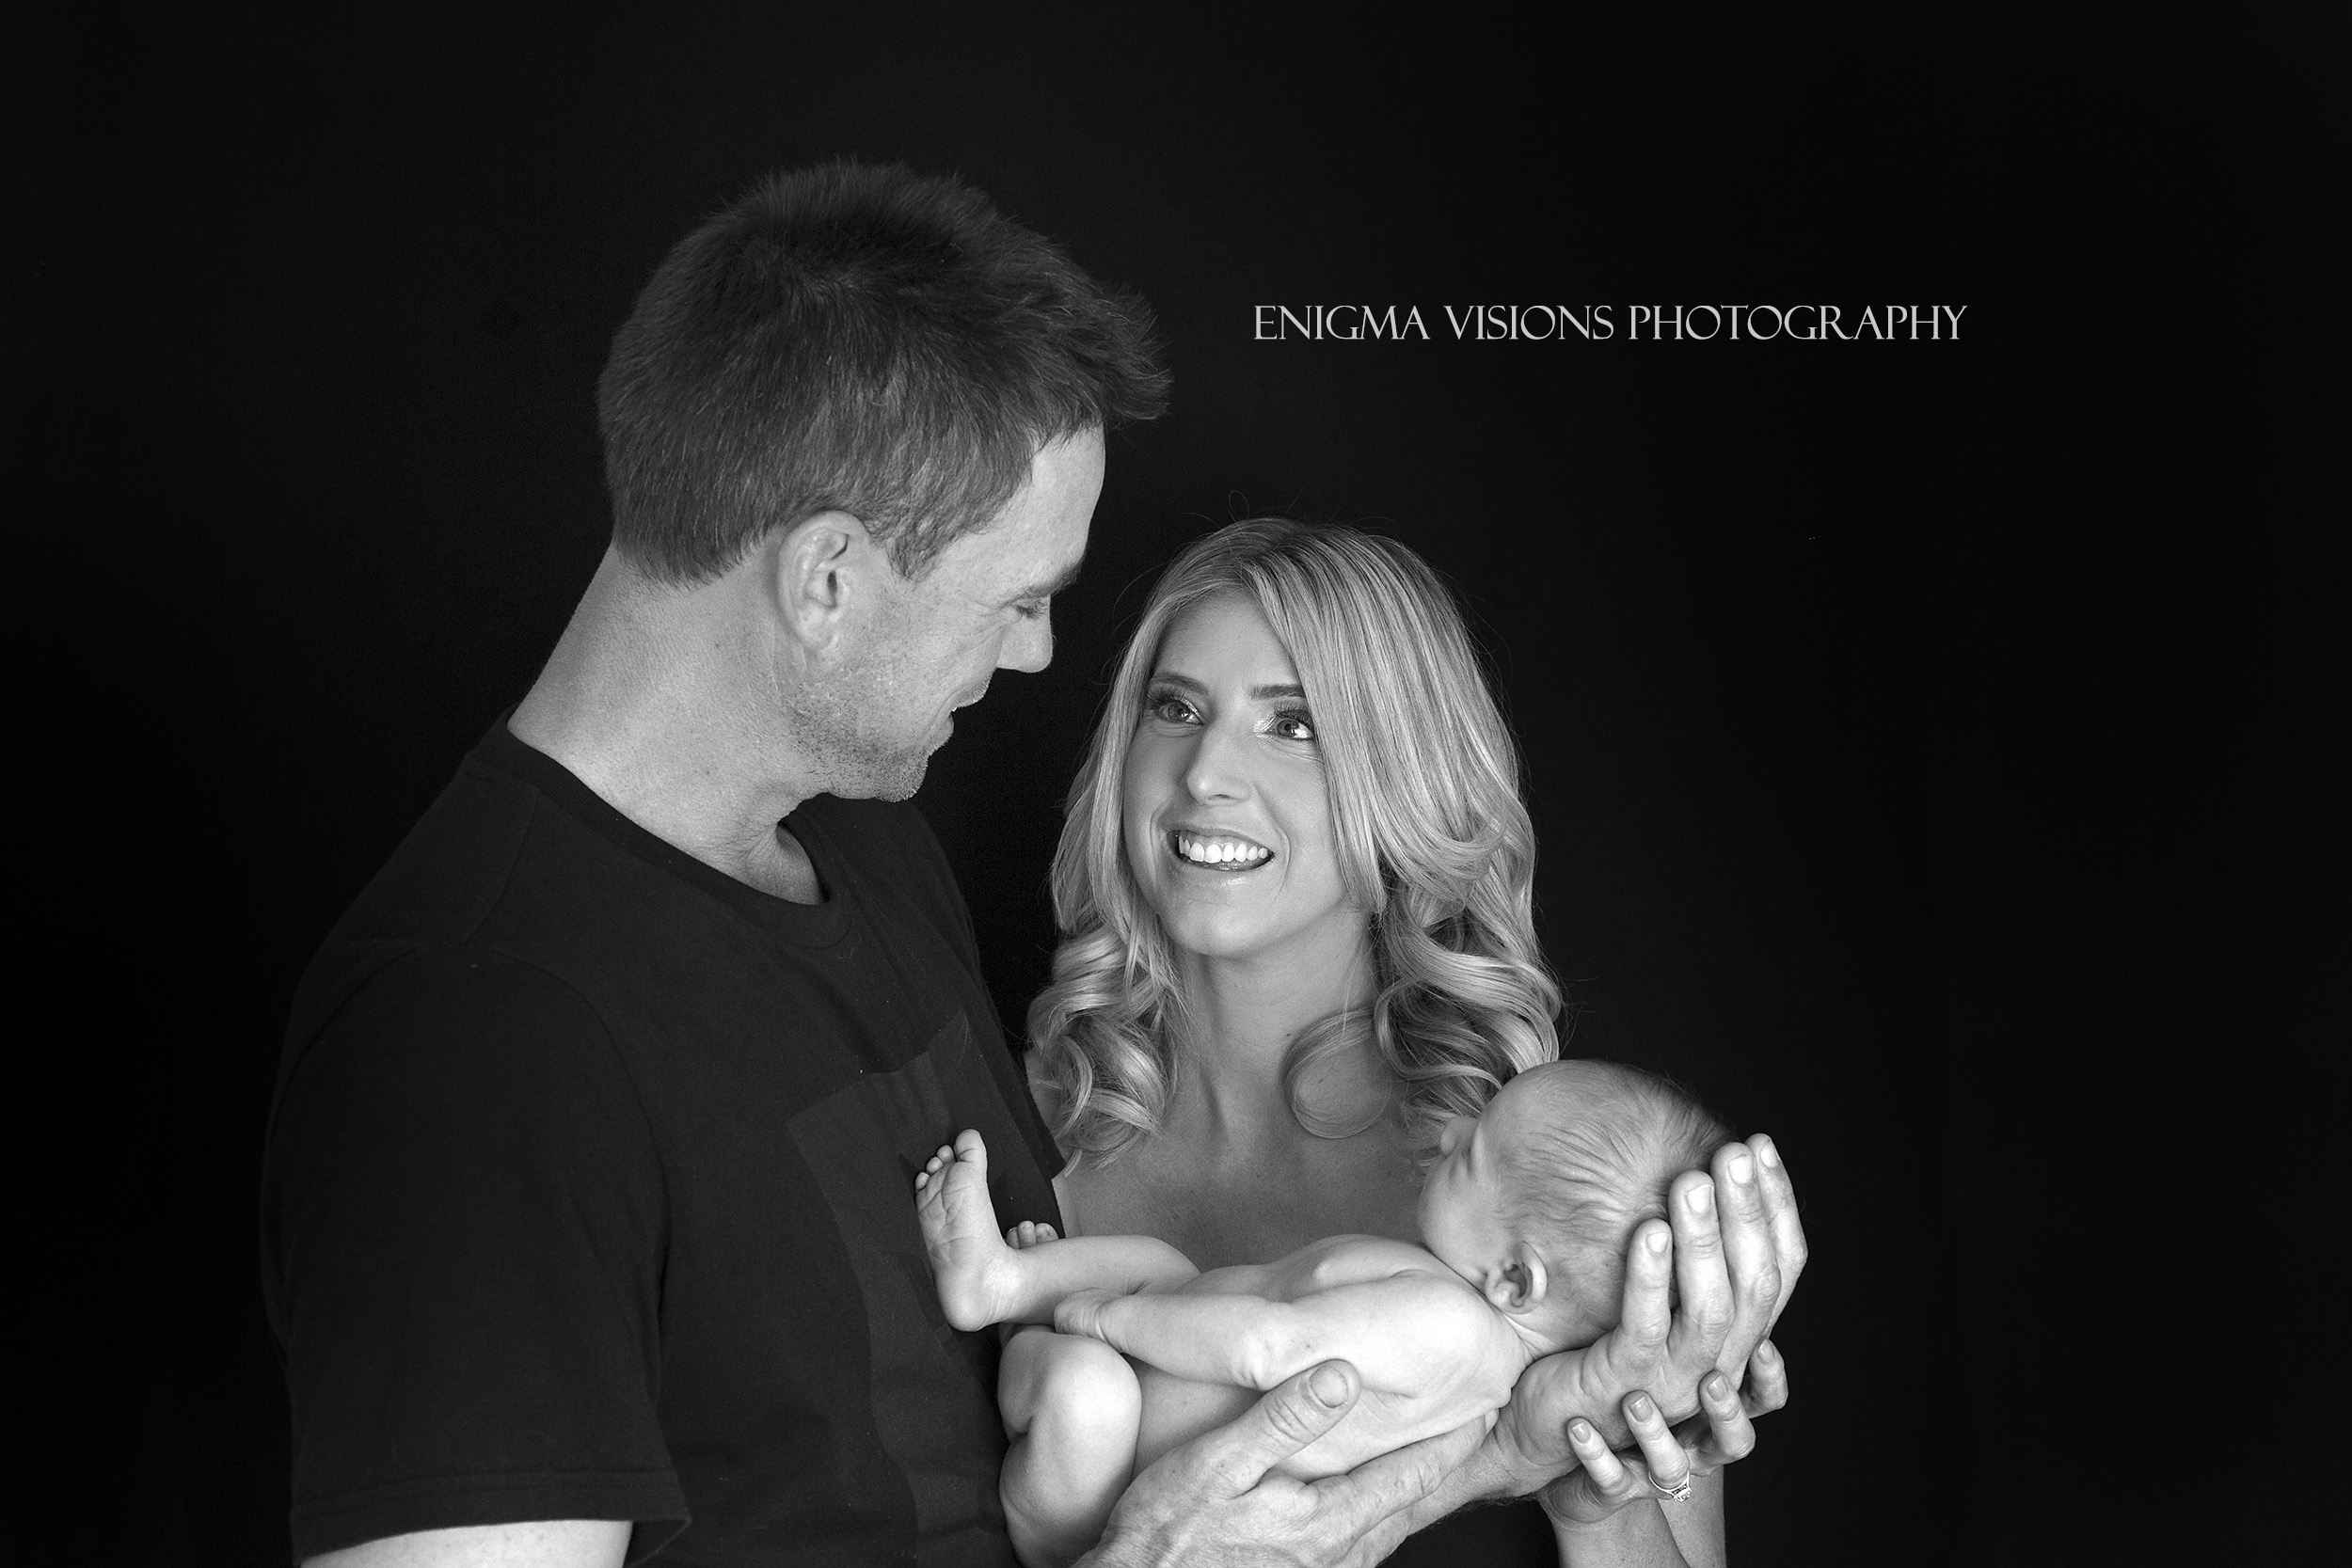 enigma_visions_photography_newborn_lifestyle_lux (5) copy.jpg